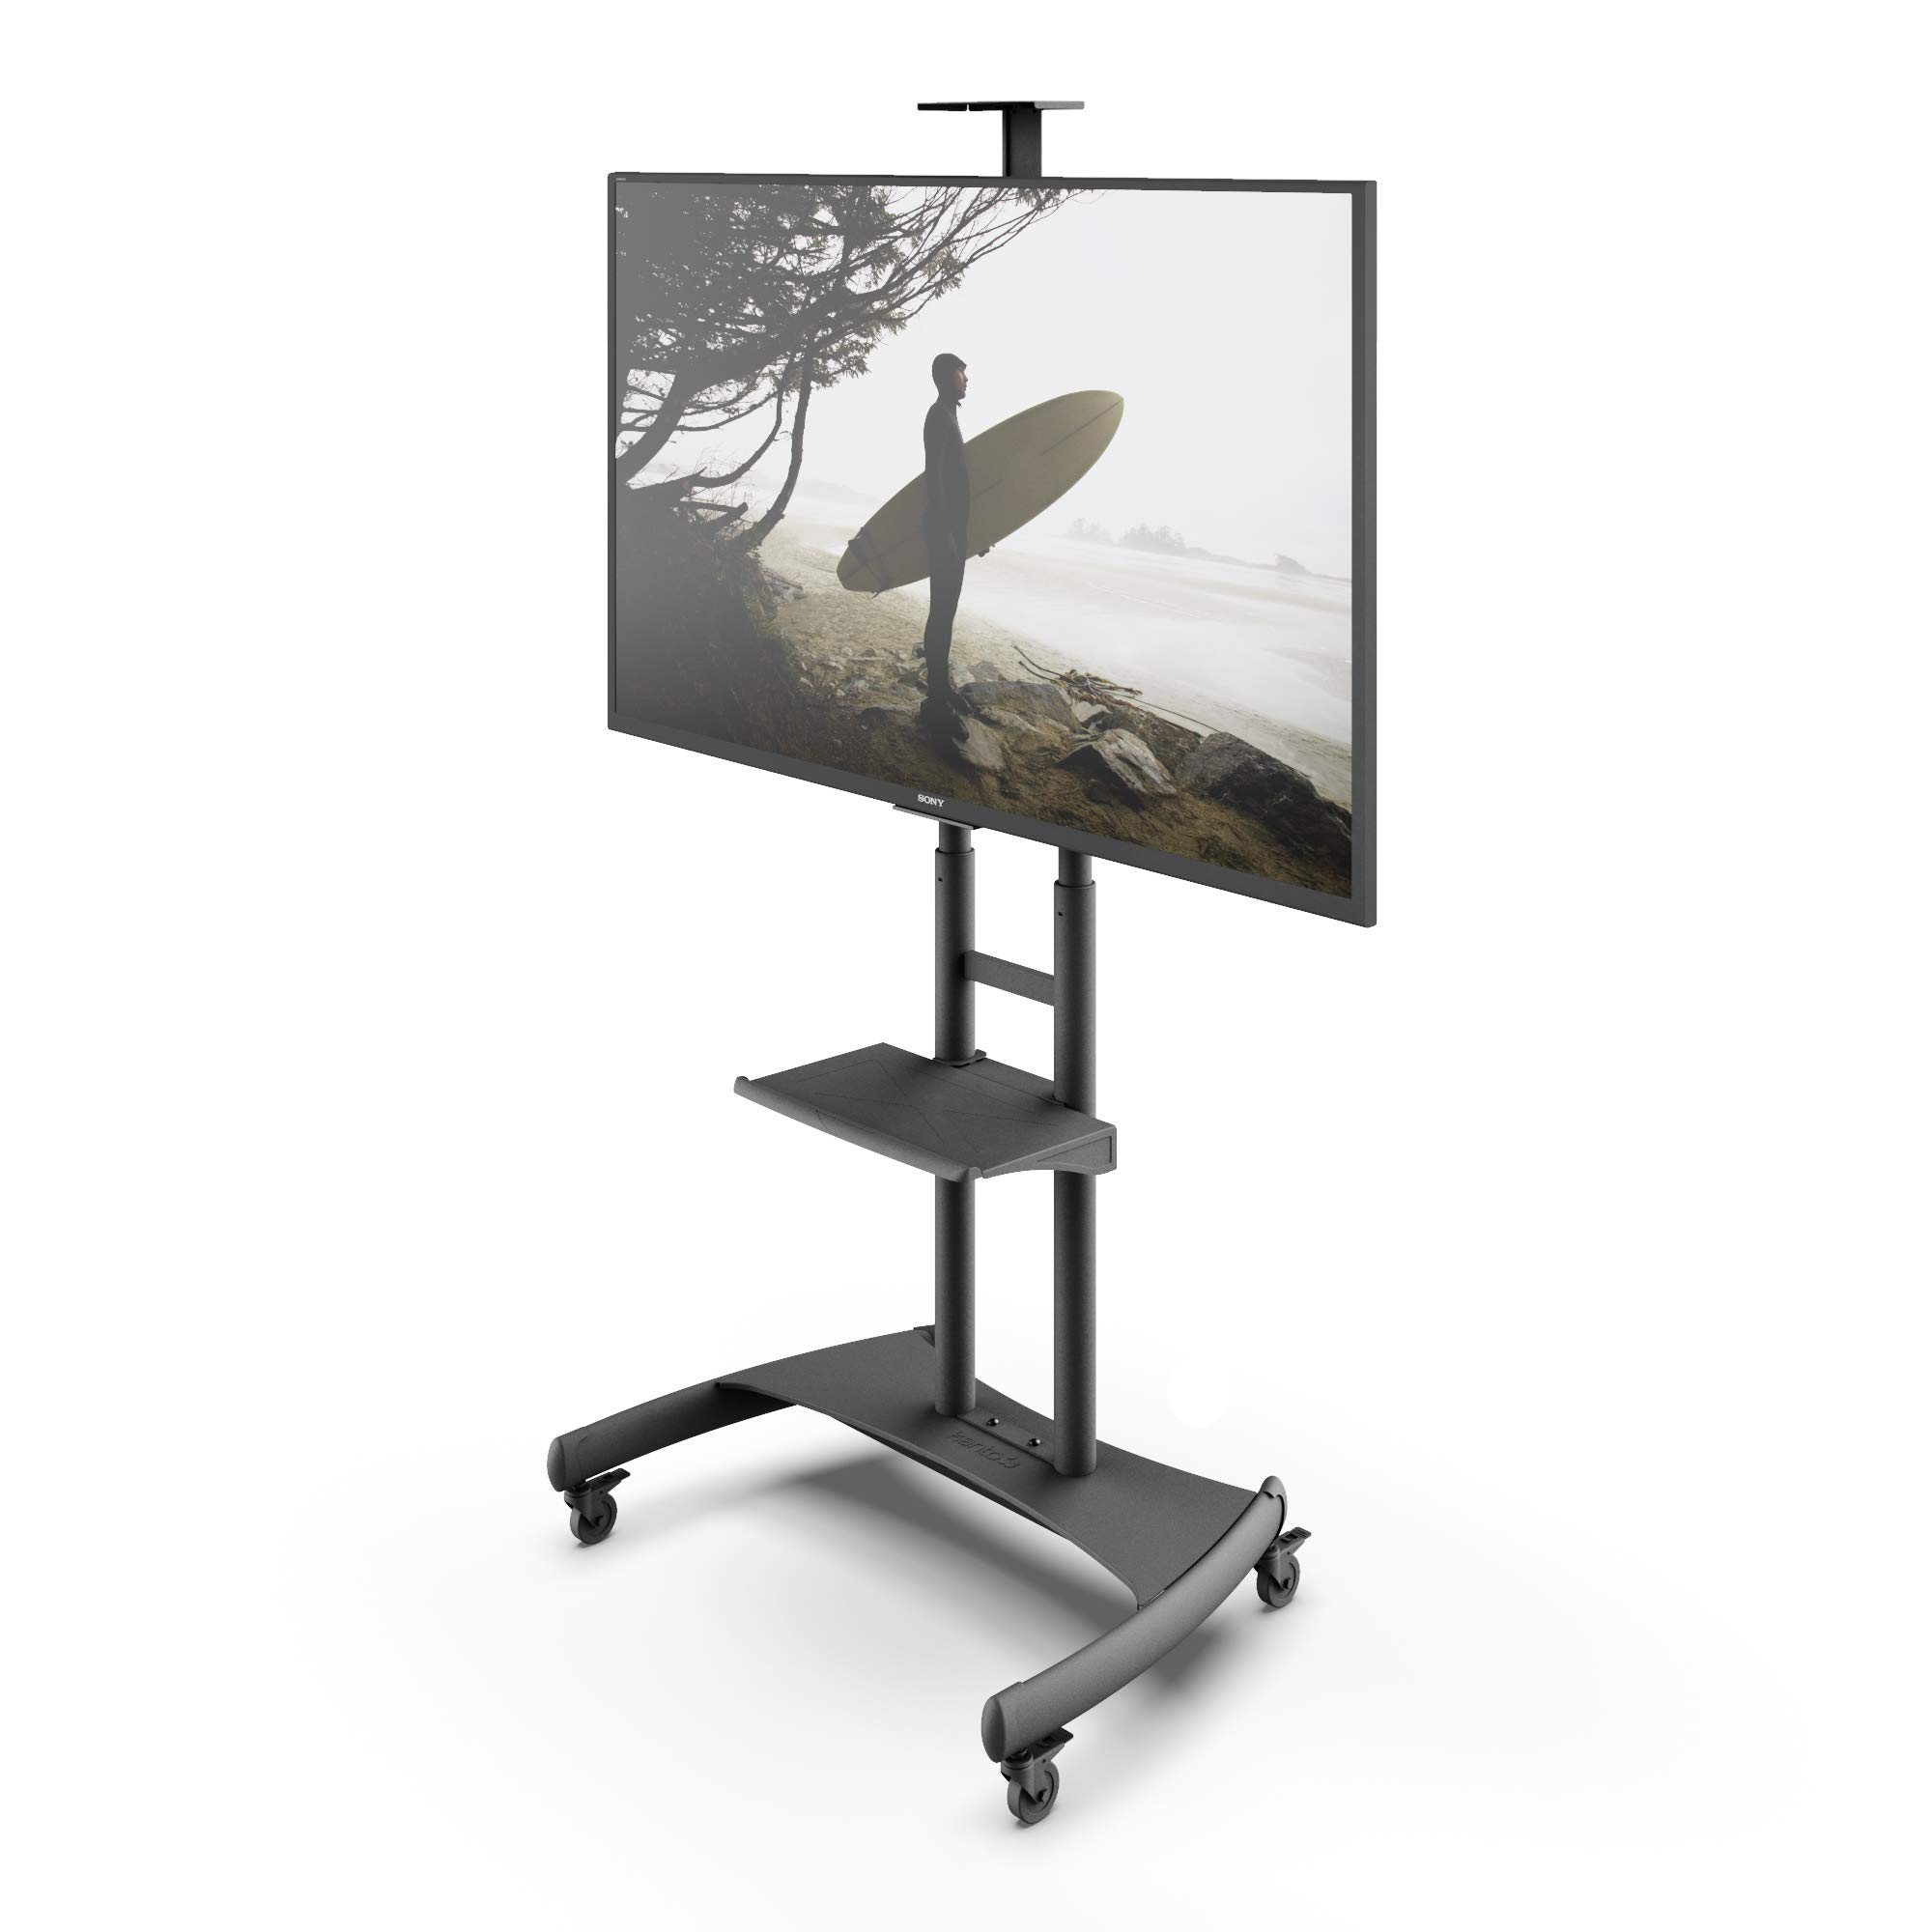 Kanto MTM82PL Height Adjustable Mobile TV Stand with Adjustable Shelf for 50-inch to 82-inch TVs by Kanto